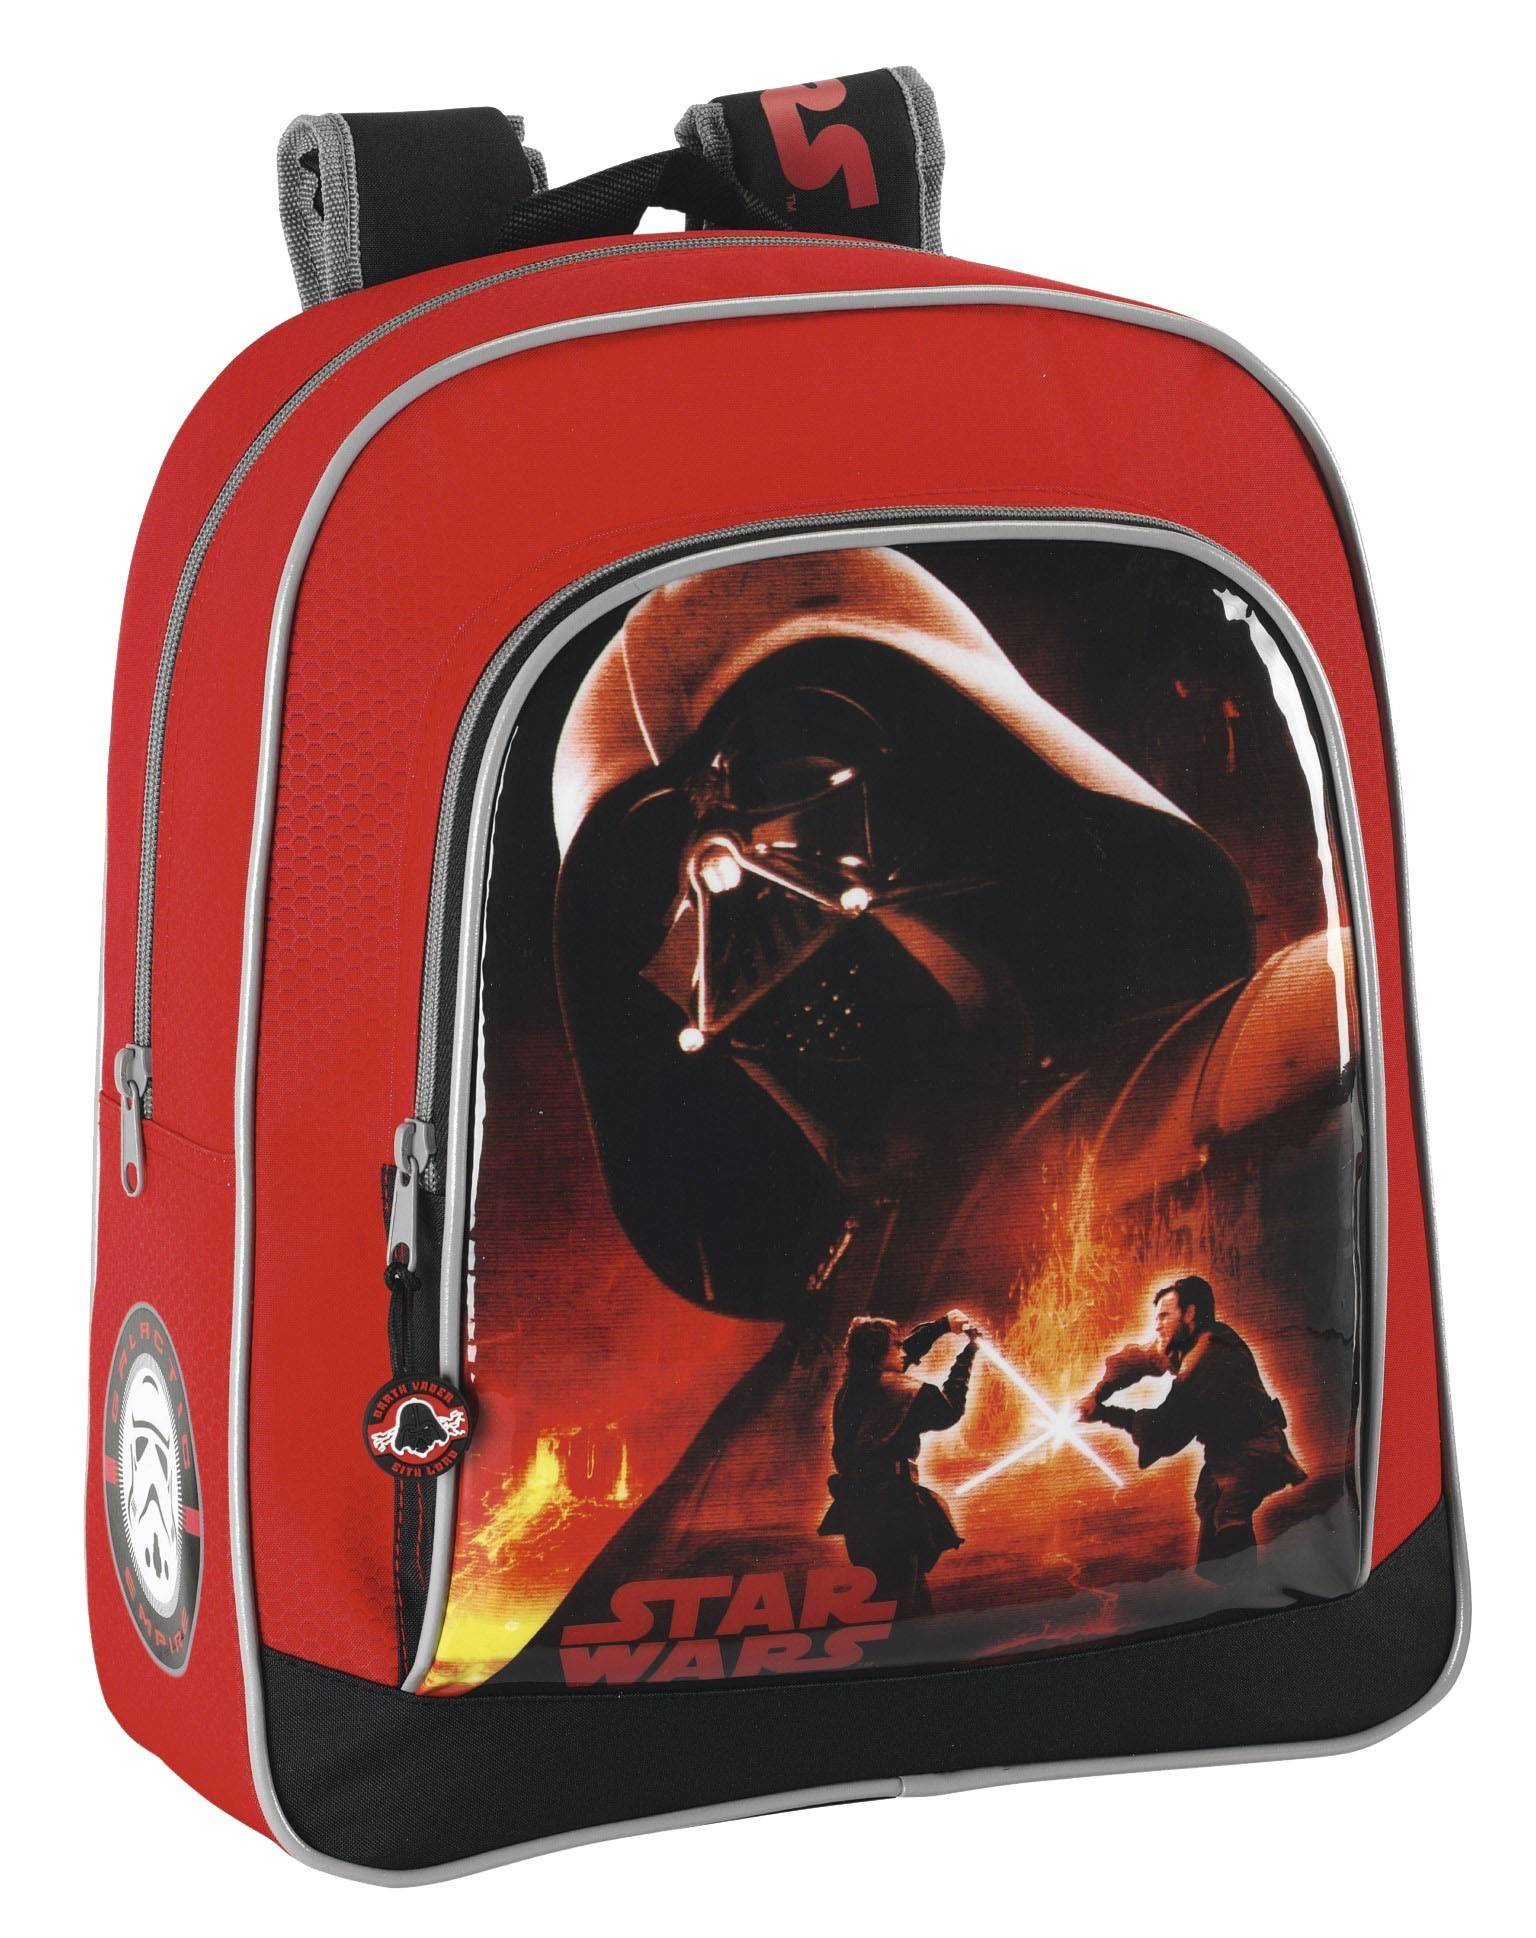 safta zaino zainetto scuola palestra piscina darth vader star wars backpack 38 cm